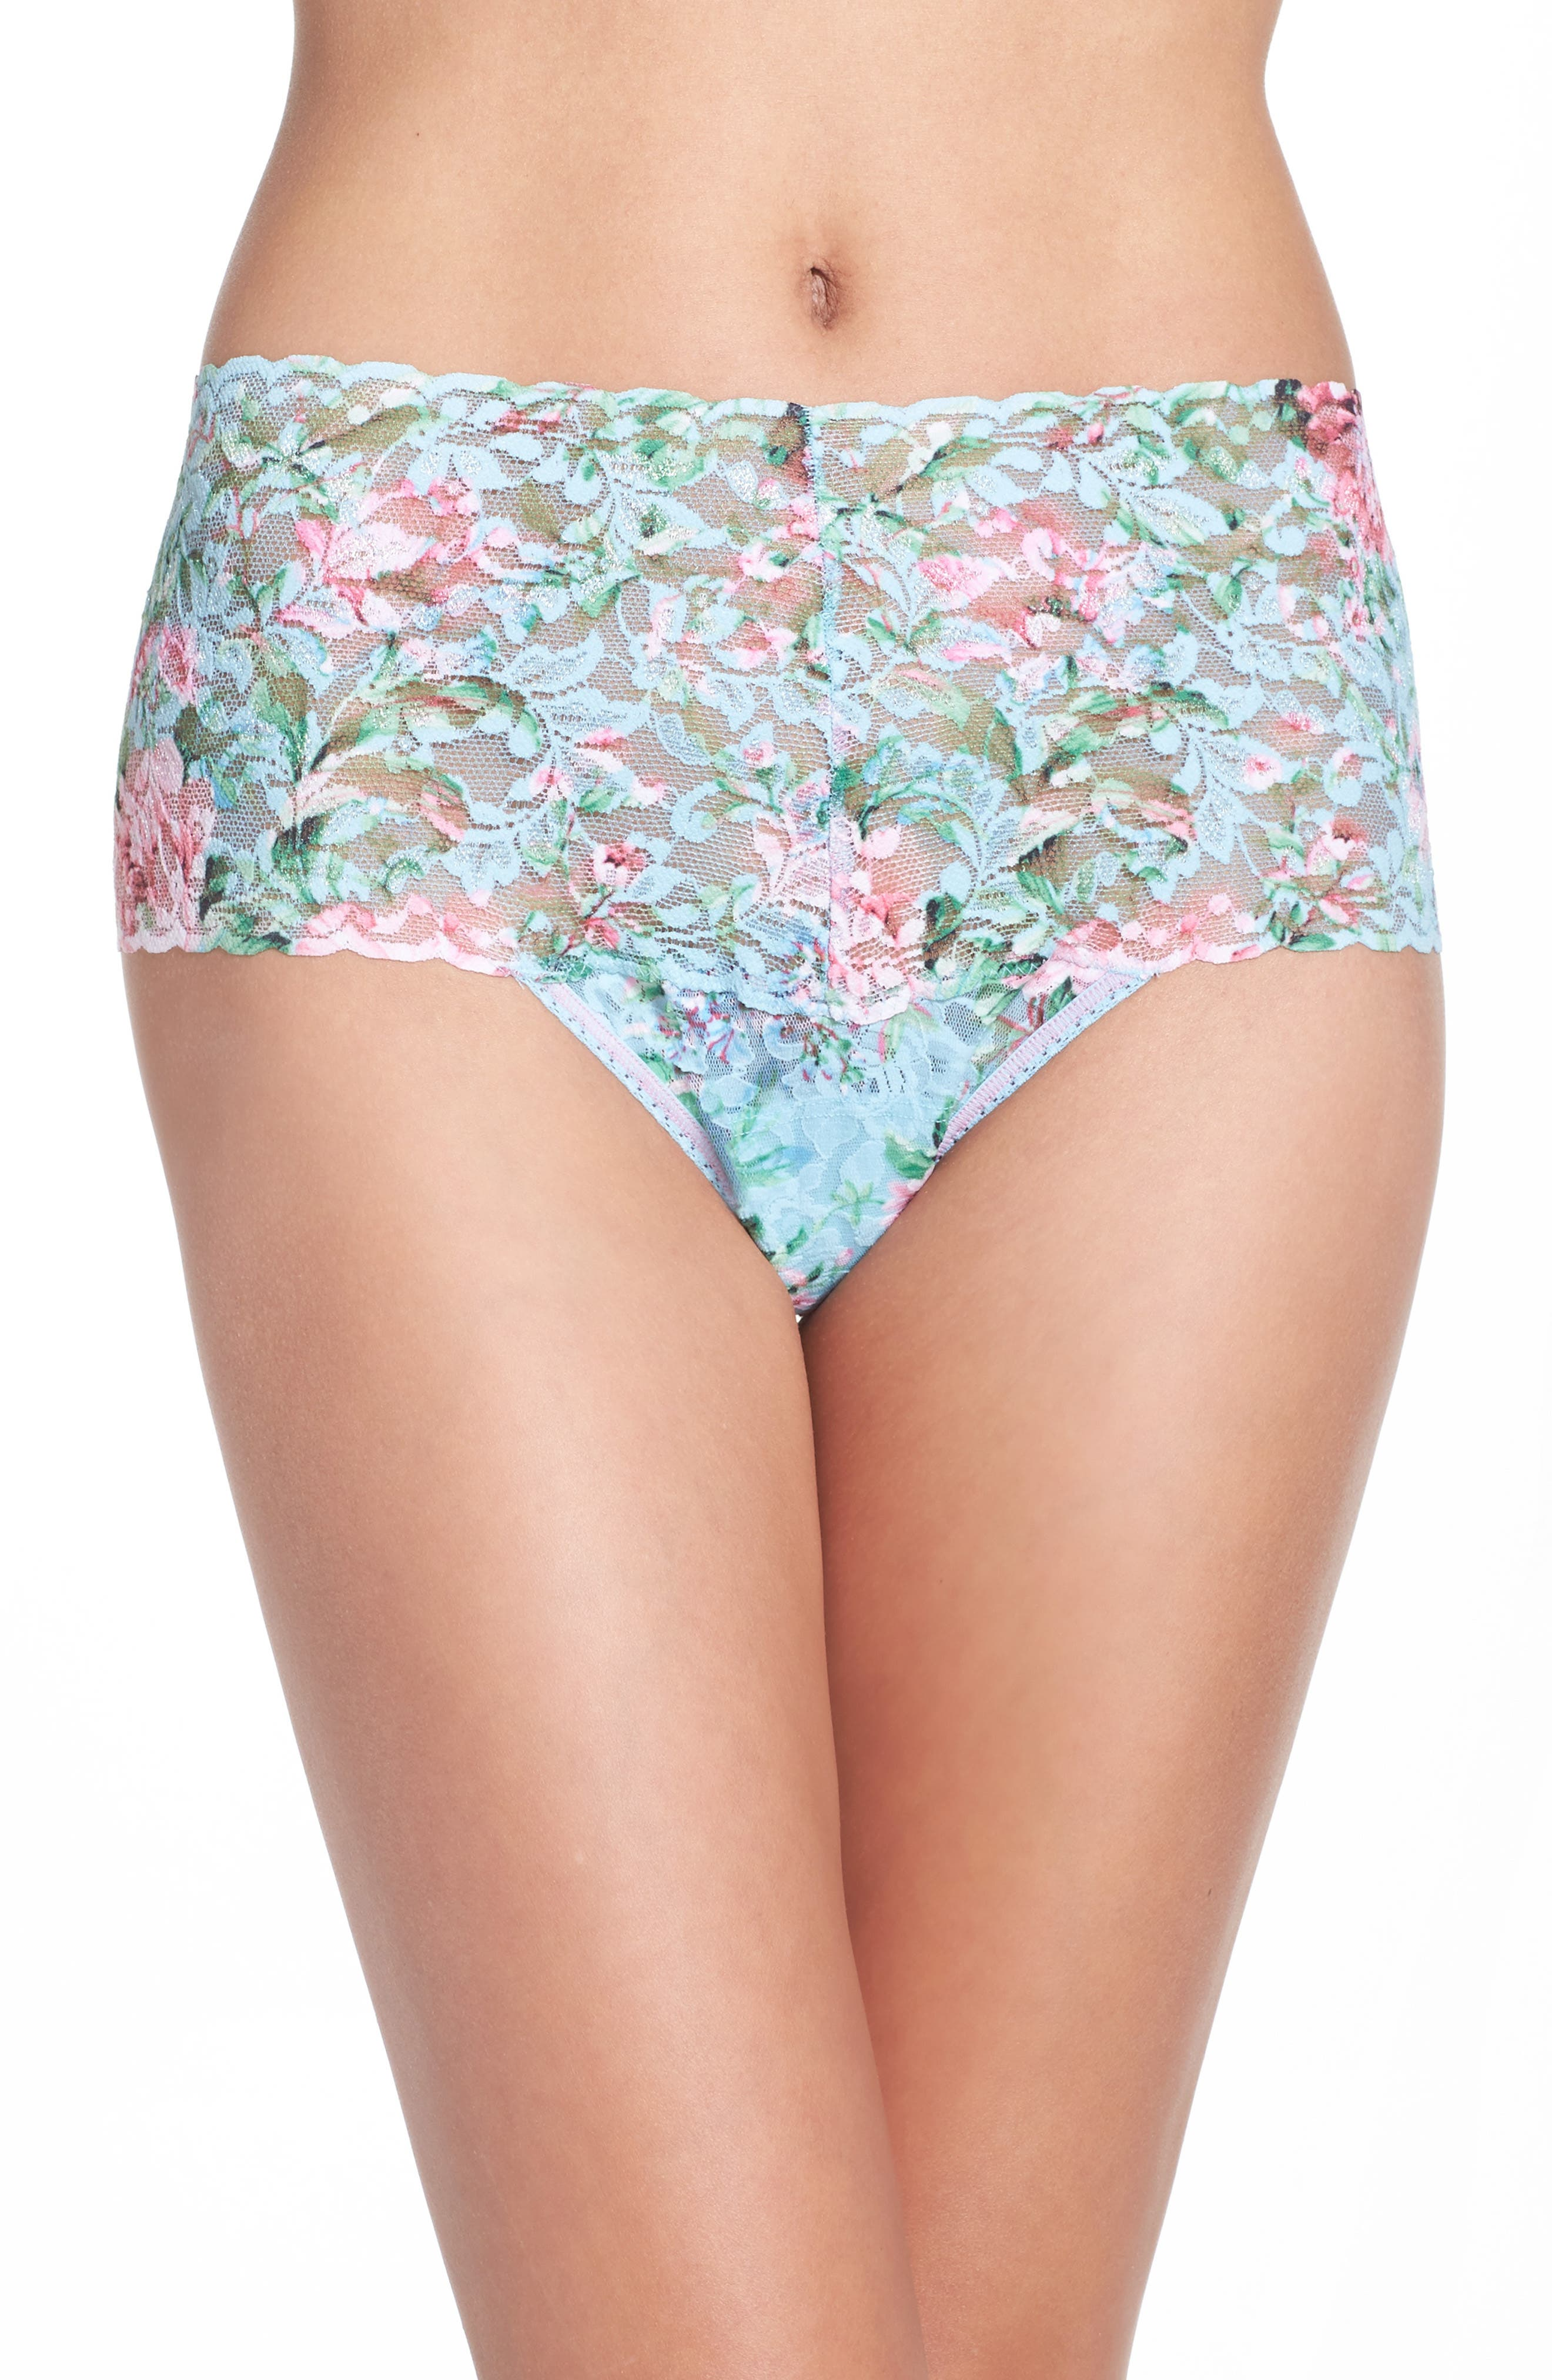 Hanky Panky Capri Bloom Retro Thong